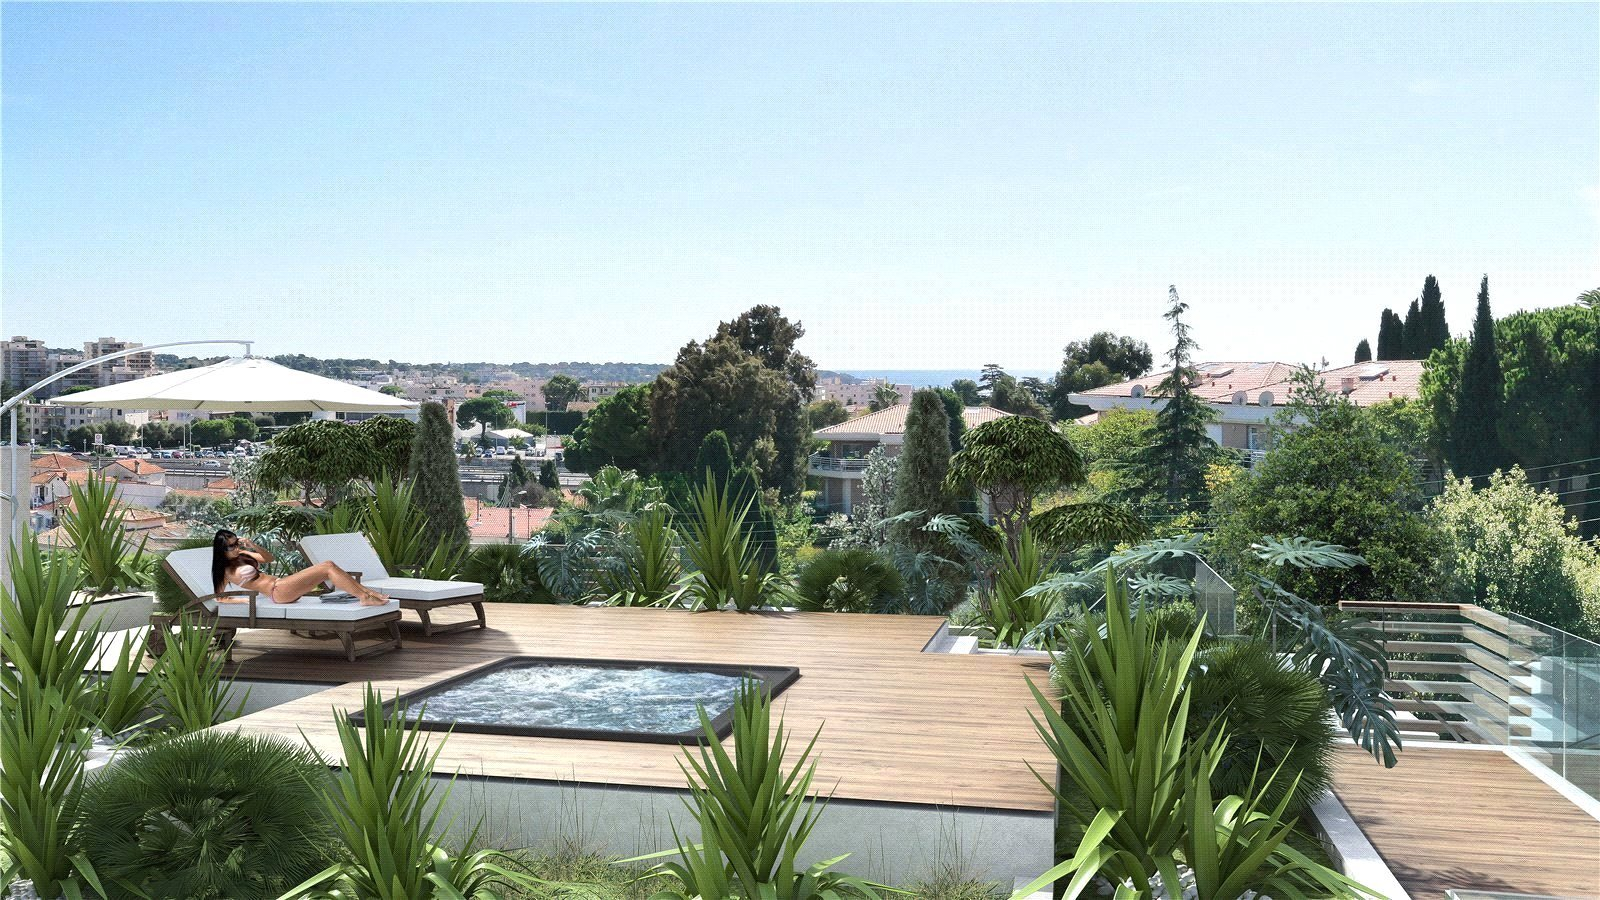 Buying Apartment Antibes Four bedroom penthouse. Available 3rd trimester 2023.